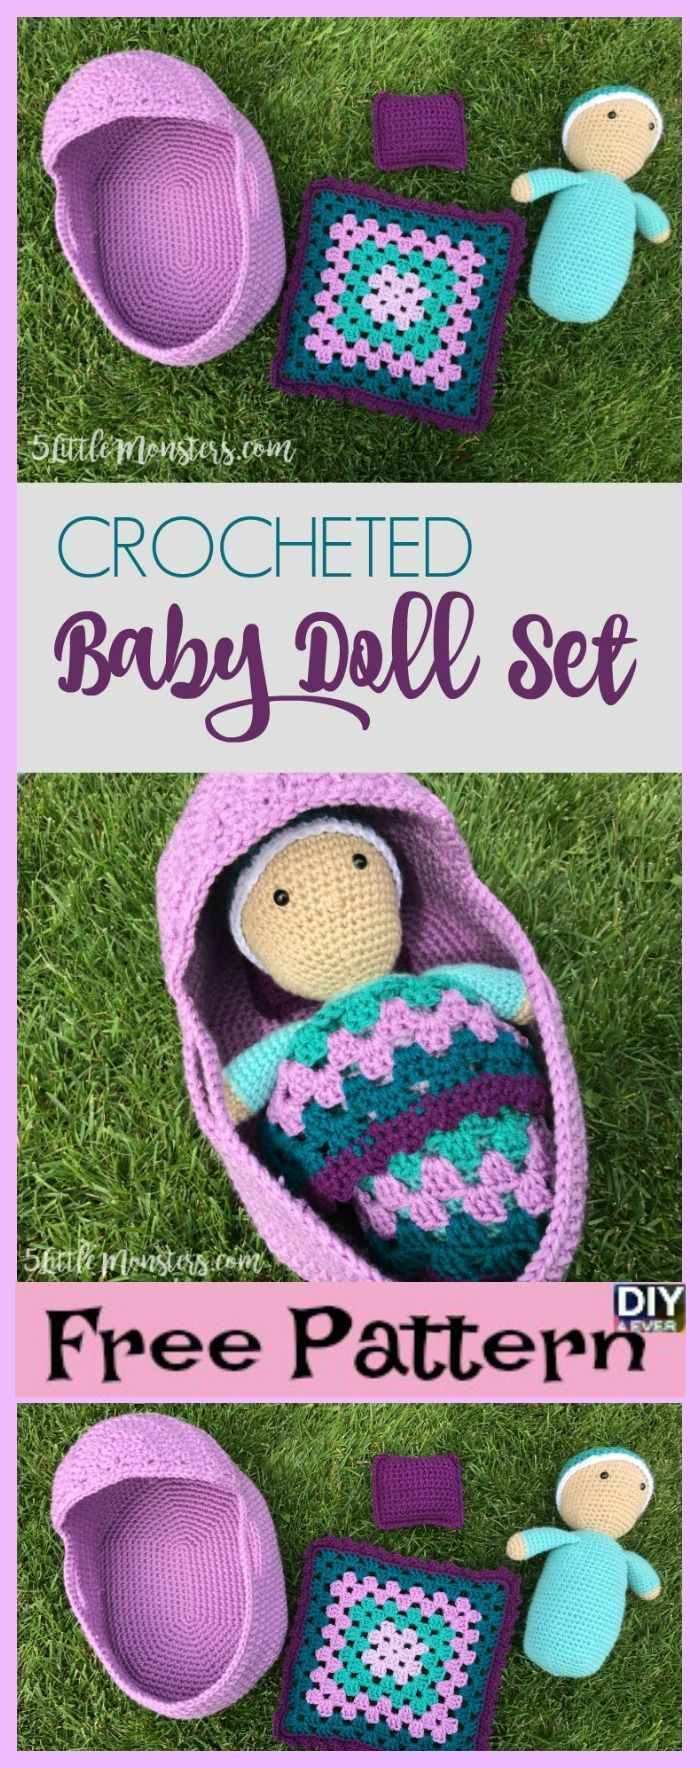 diy4ever- Crocheted Baby Doll Set Free Pattern Video #freepattern #CrochetBaby